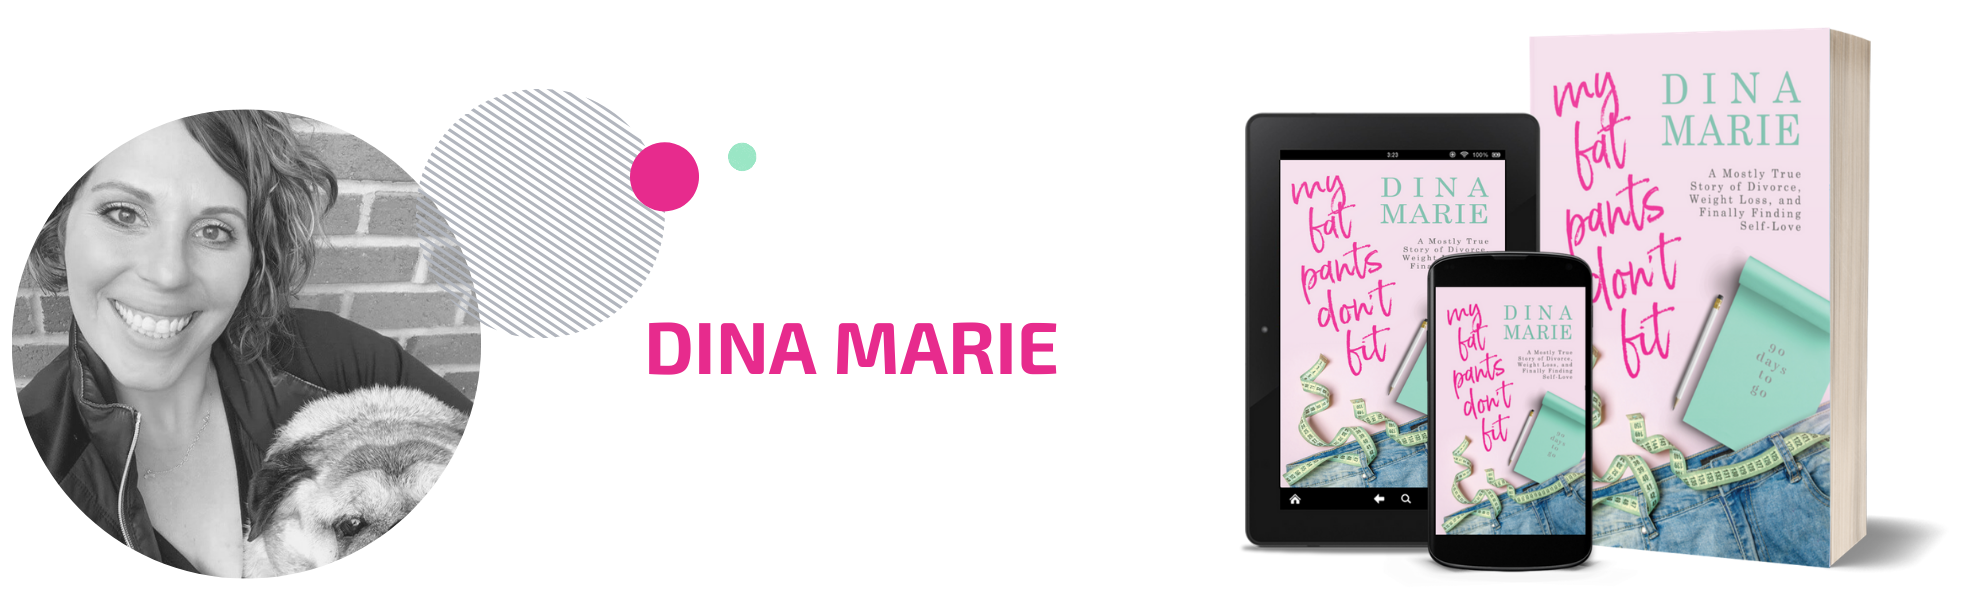 Dina Marie Author Page Header